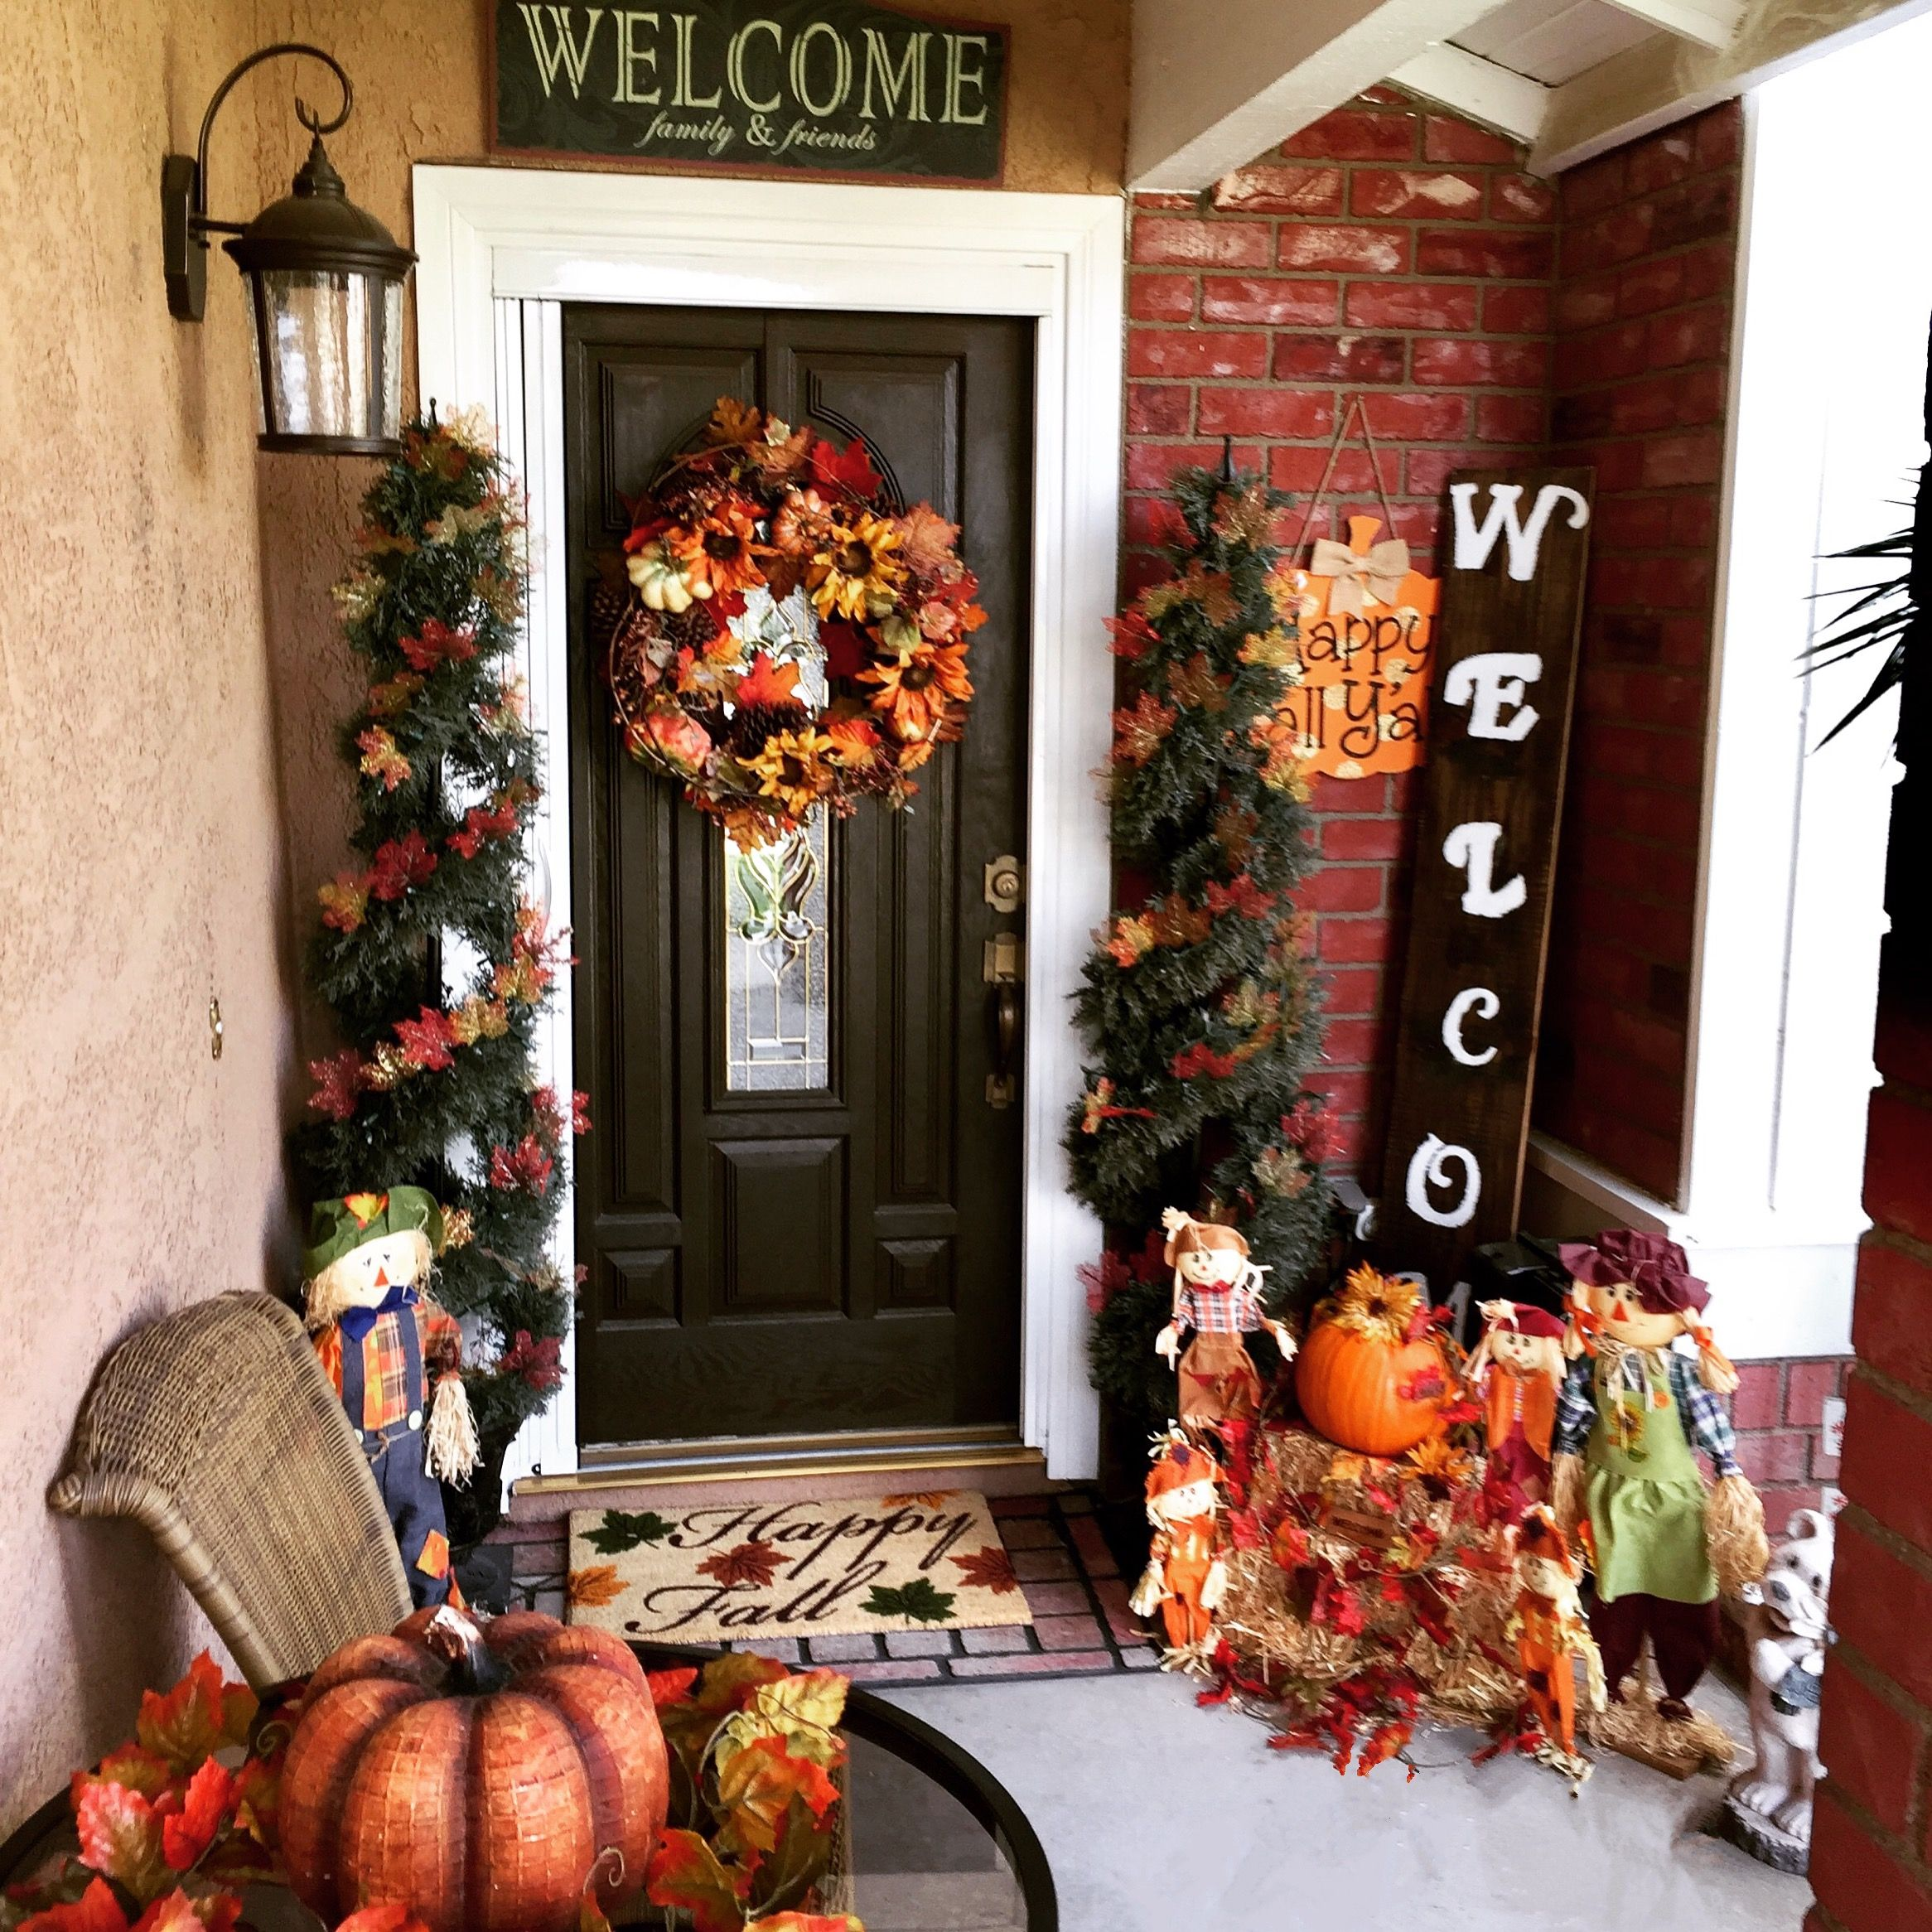 Halloween Decorations Home: Pin By Deanna Morgan On Halloween In 2019